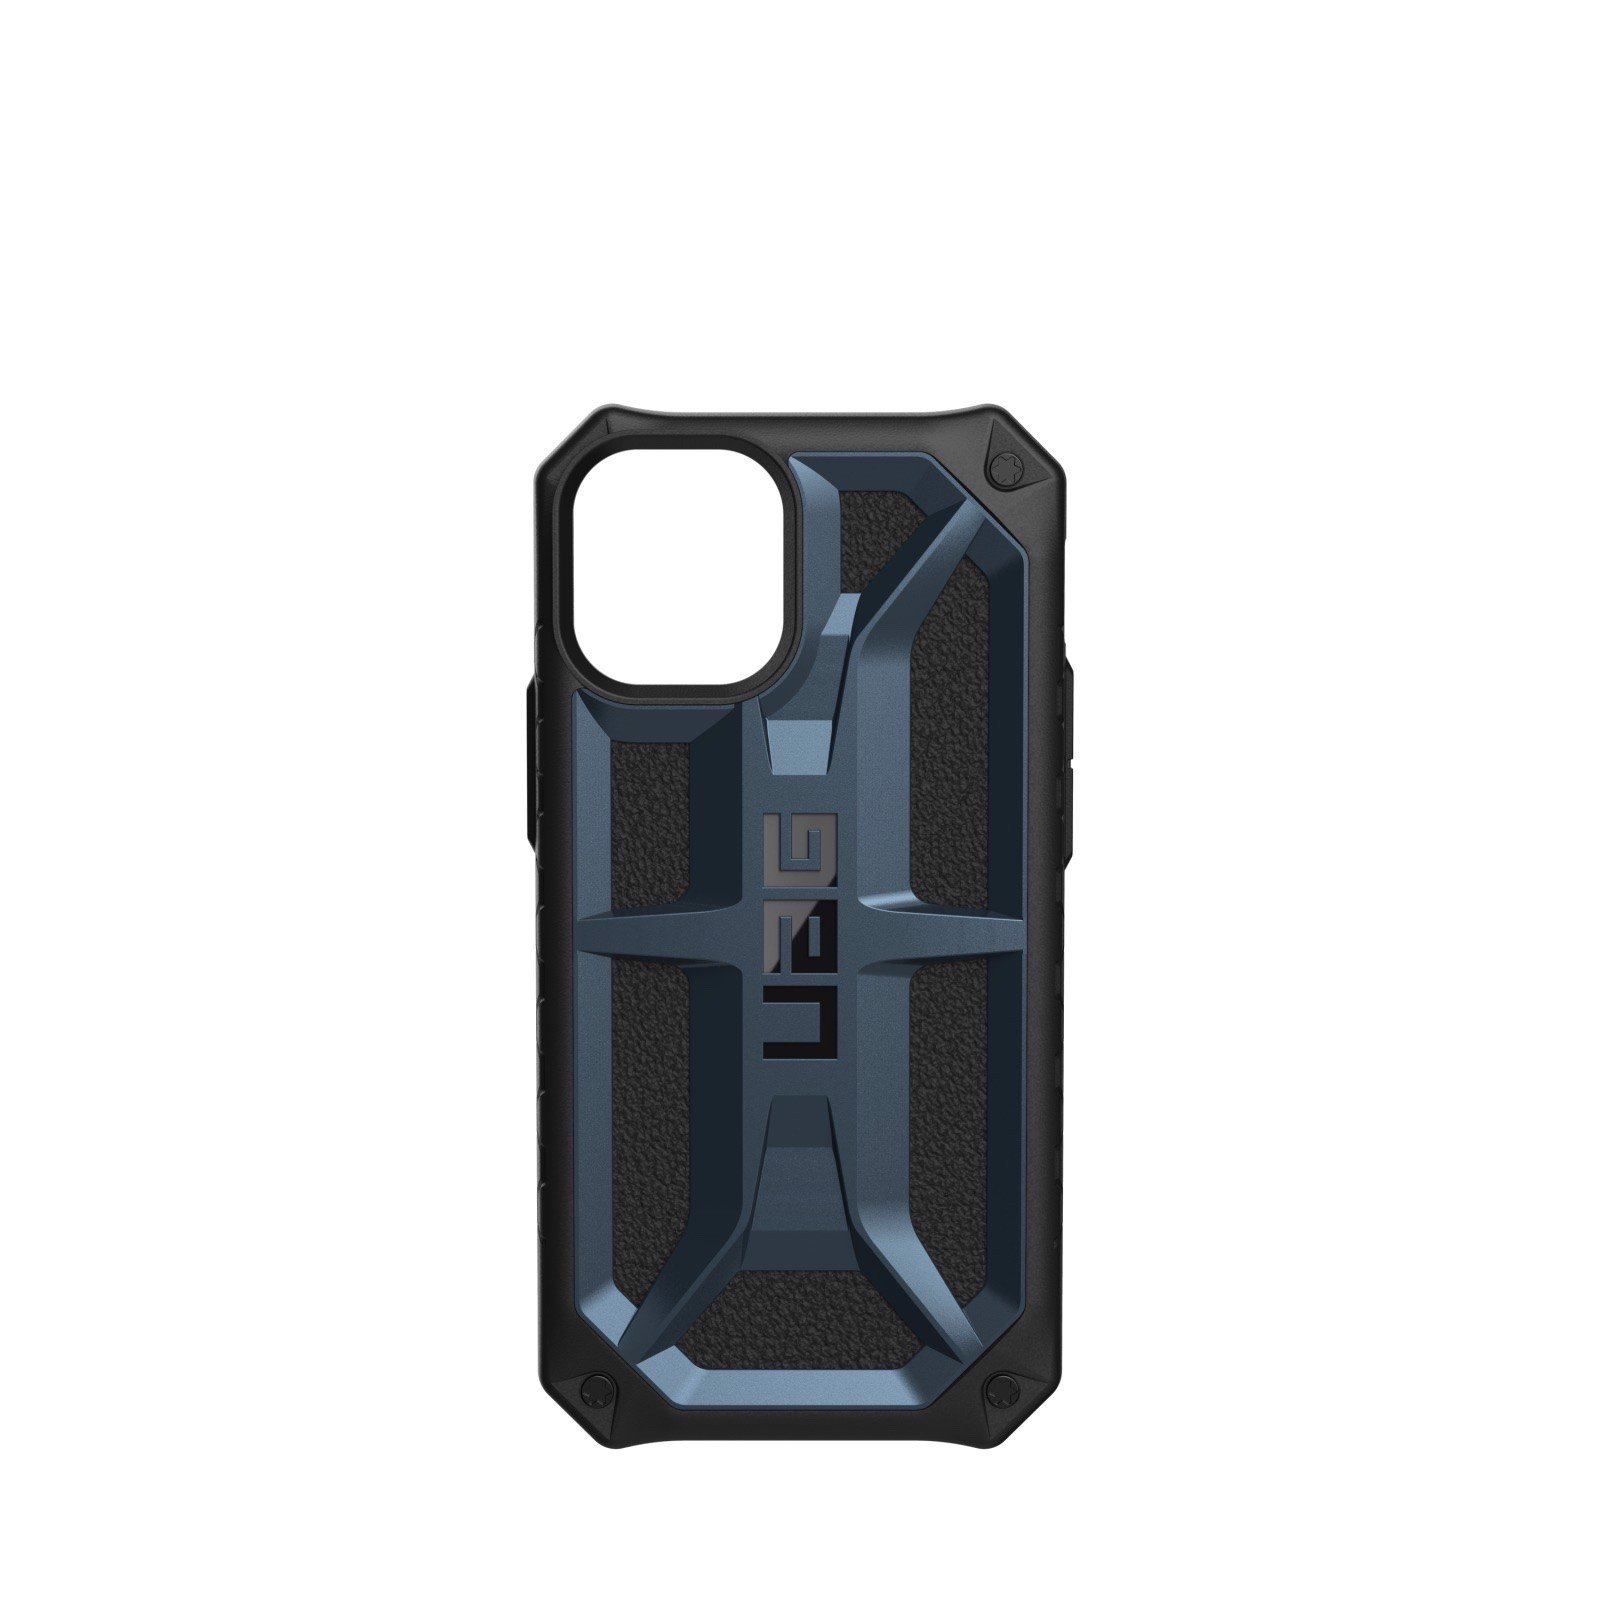 ỐP LƯNG UAG MONARCH CHO IPHONE 12 MINI [5.4-INCH] - Mallard